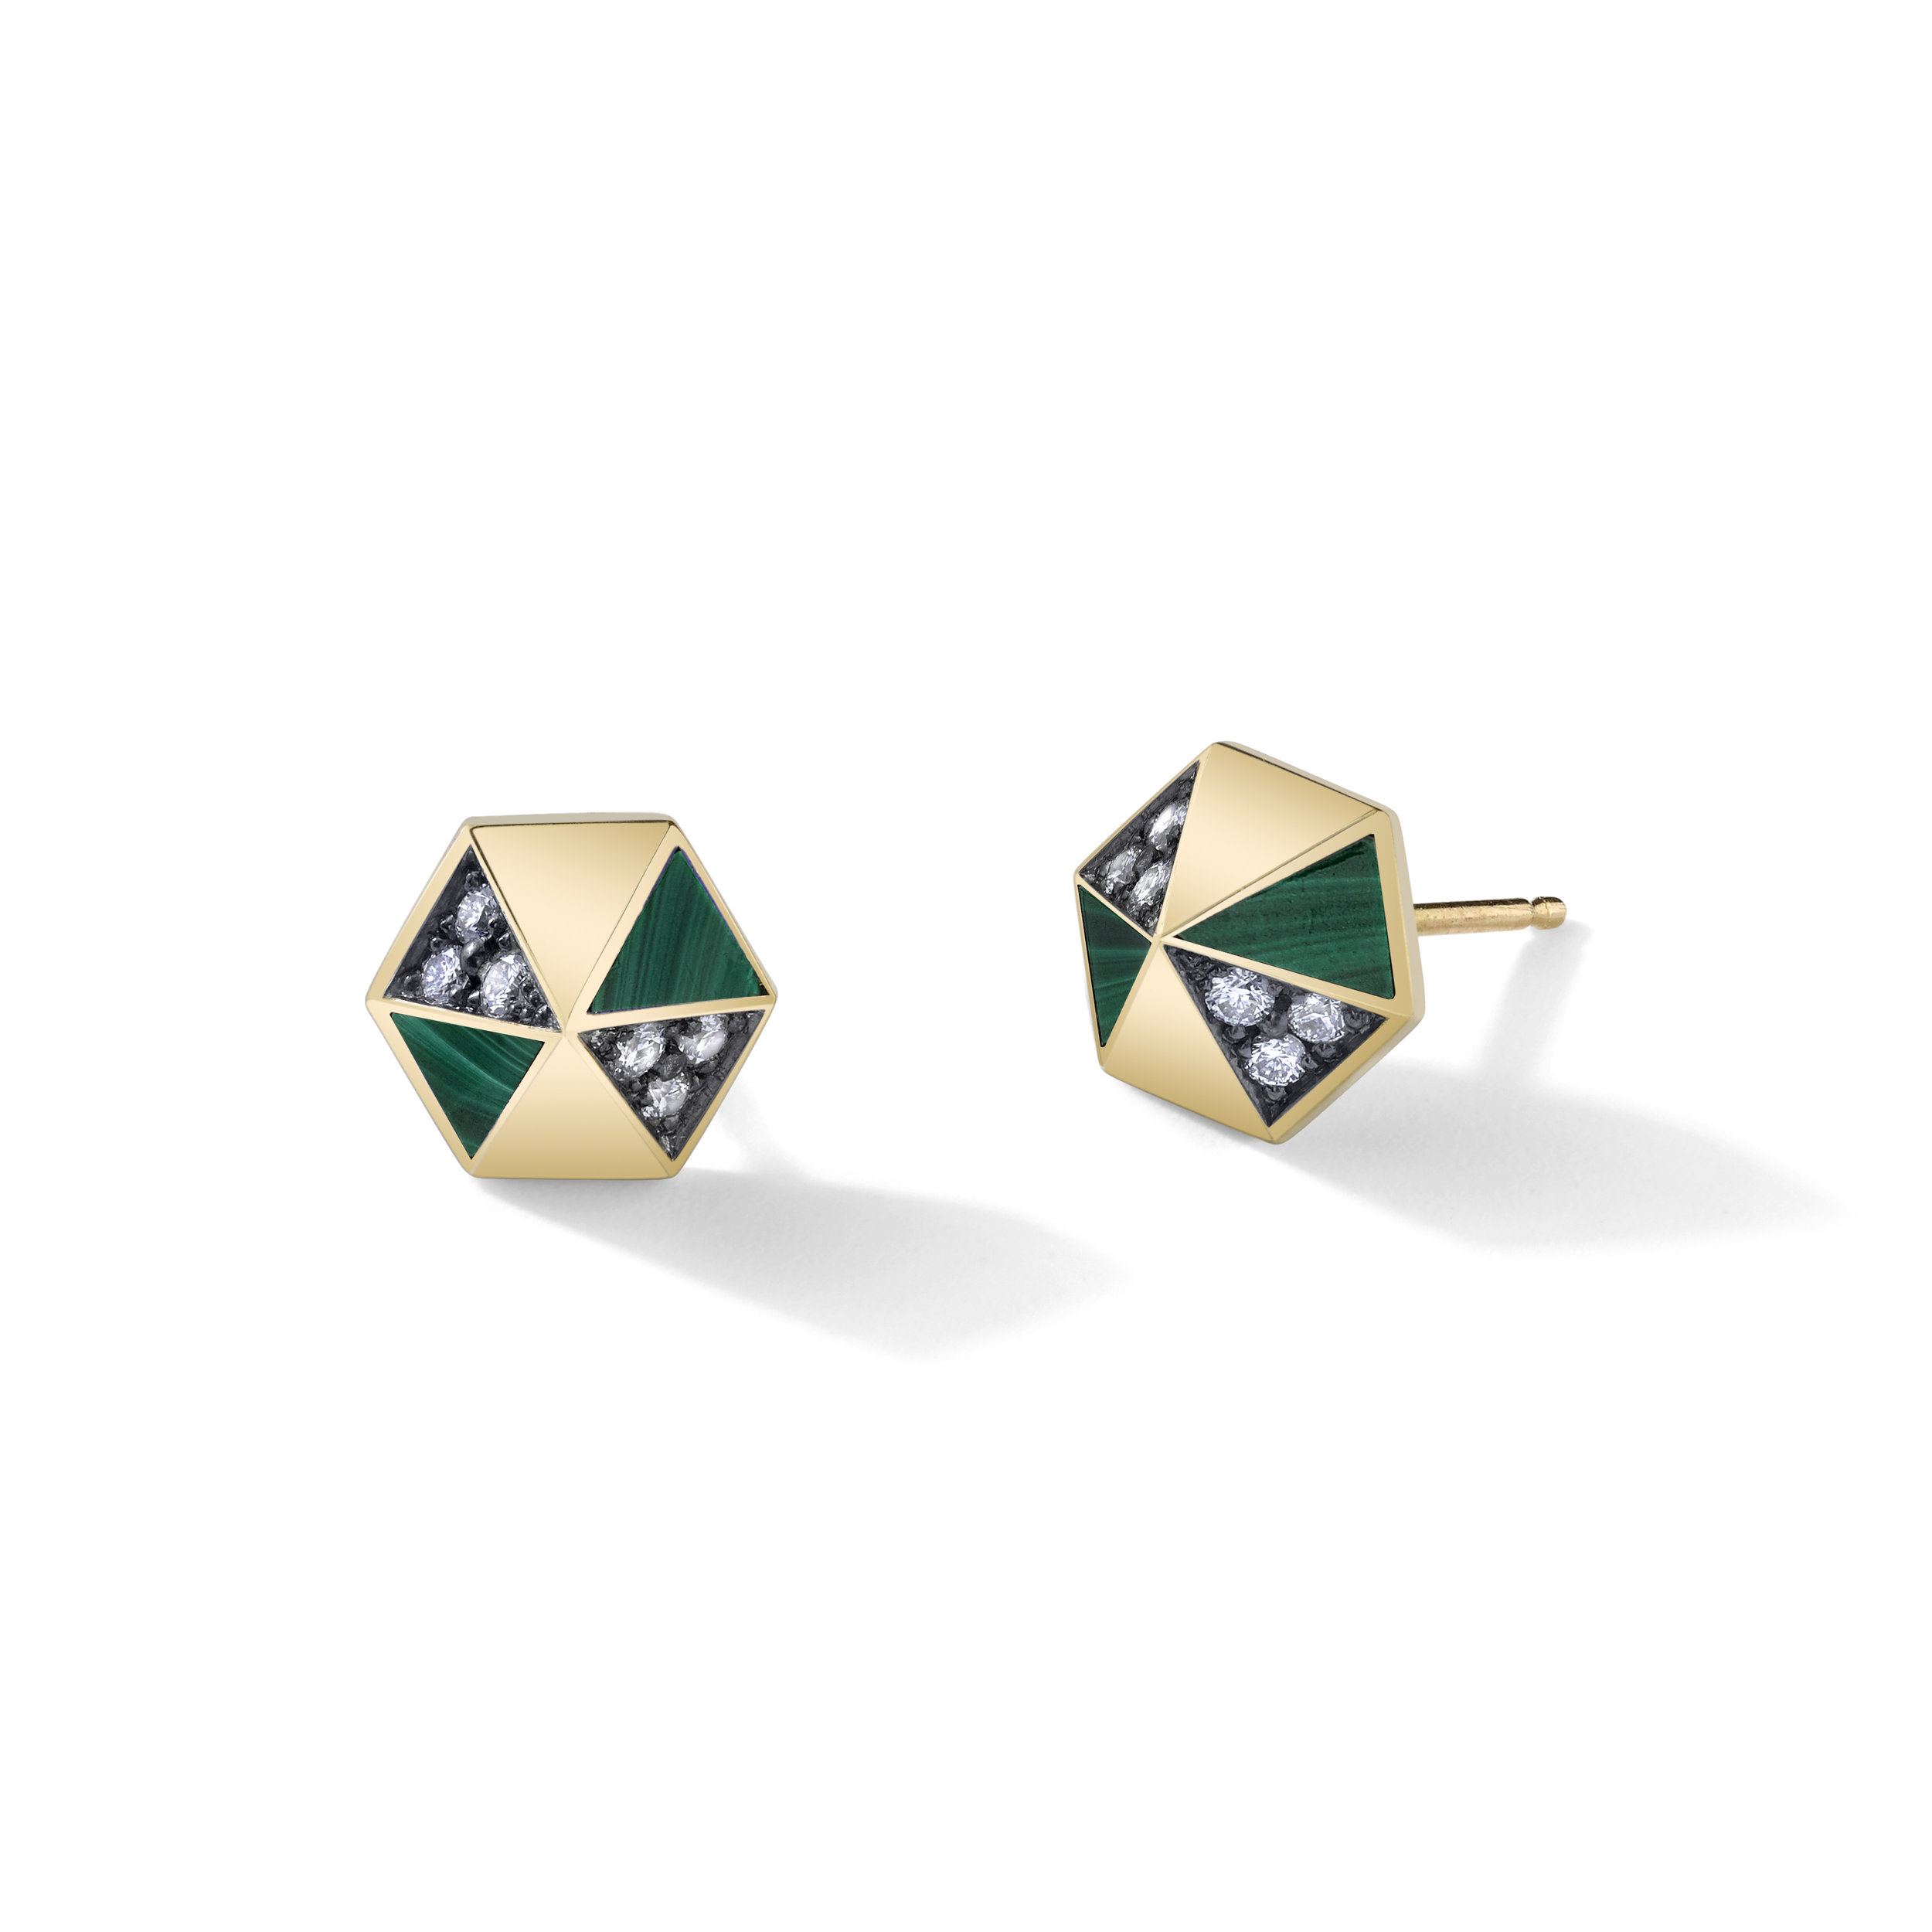 These Harwell Godfrey pyramid studs in 18K yellow gold inlaid malachite and diamonds are chic, effortless and current, all at the same time. You can wear them alone or if you have multiple piercings in your lobes, you can wear them with simple diamond or emerald studs in different stones cuts for a more creative vibe.